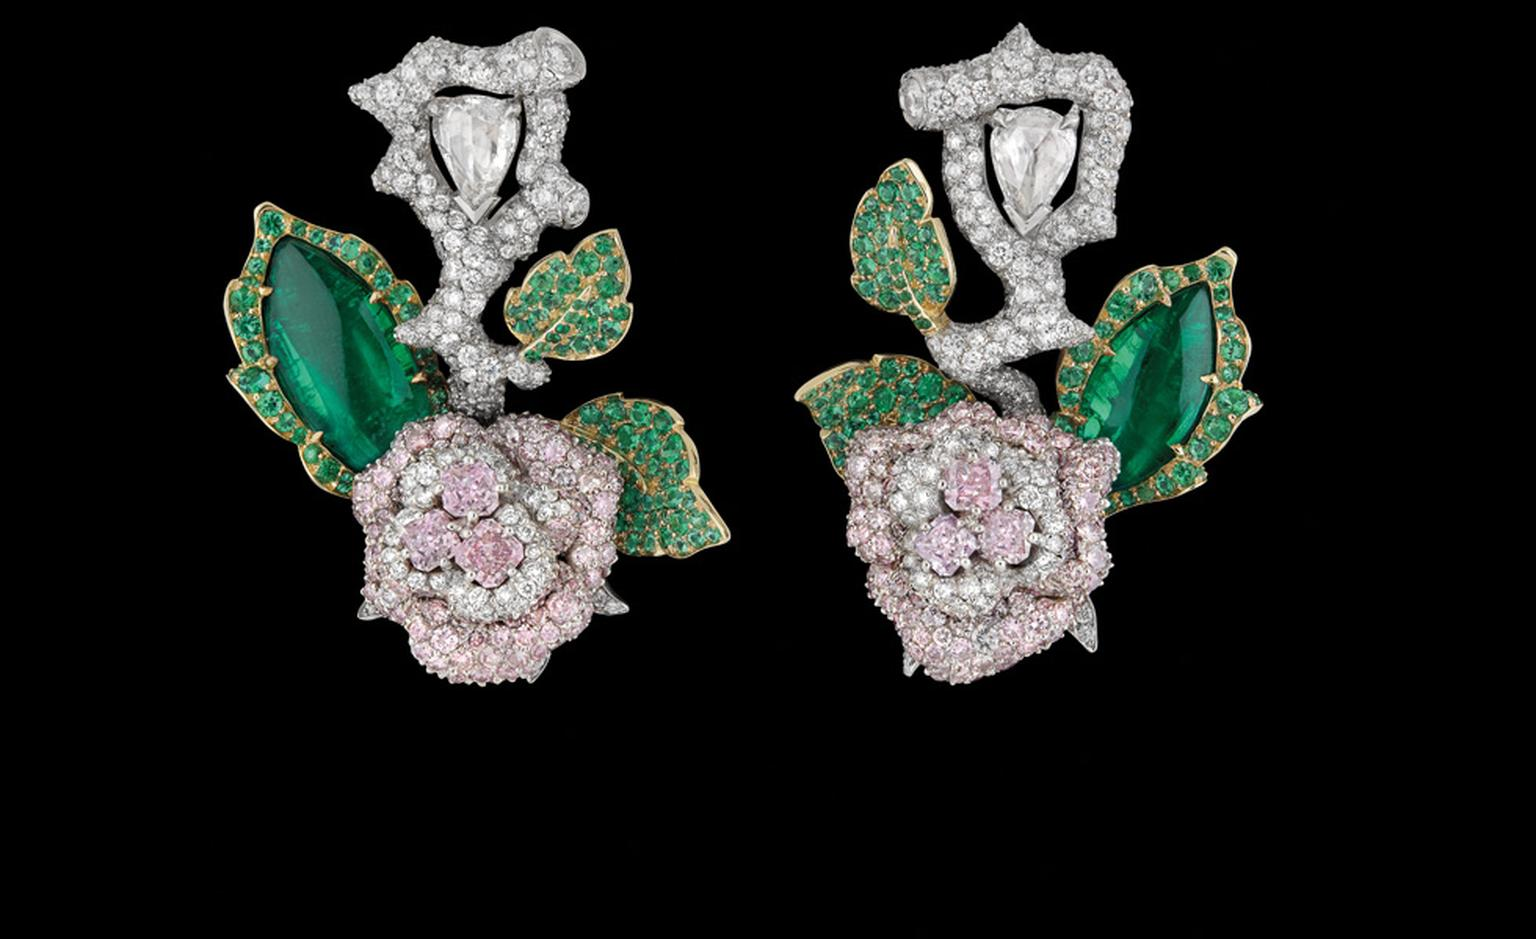 Dior Fine Jewellery Le Bal des Roses, Bal de Mai earrings in white and yellow gold with diamonds,  fancy pink, lilac and mauve diamonds and emeralds.